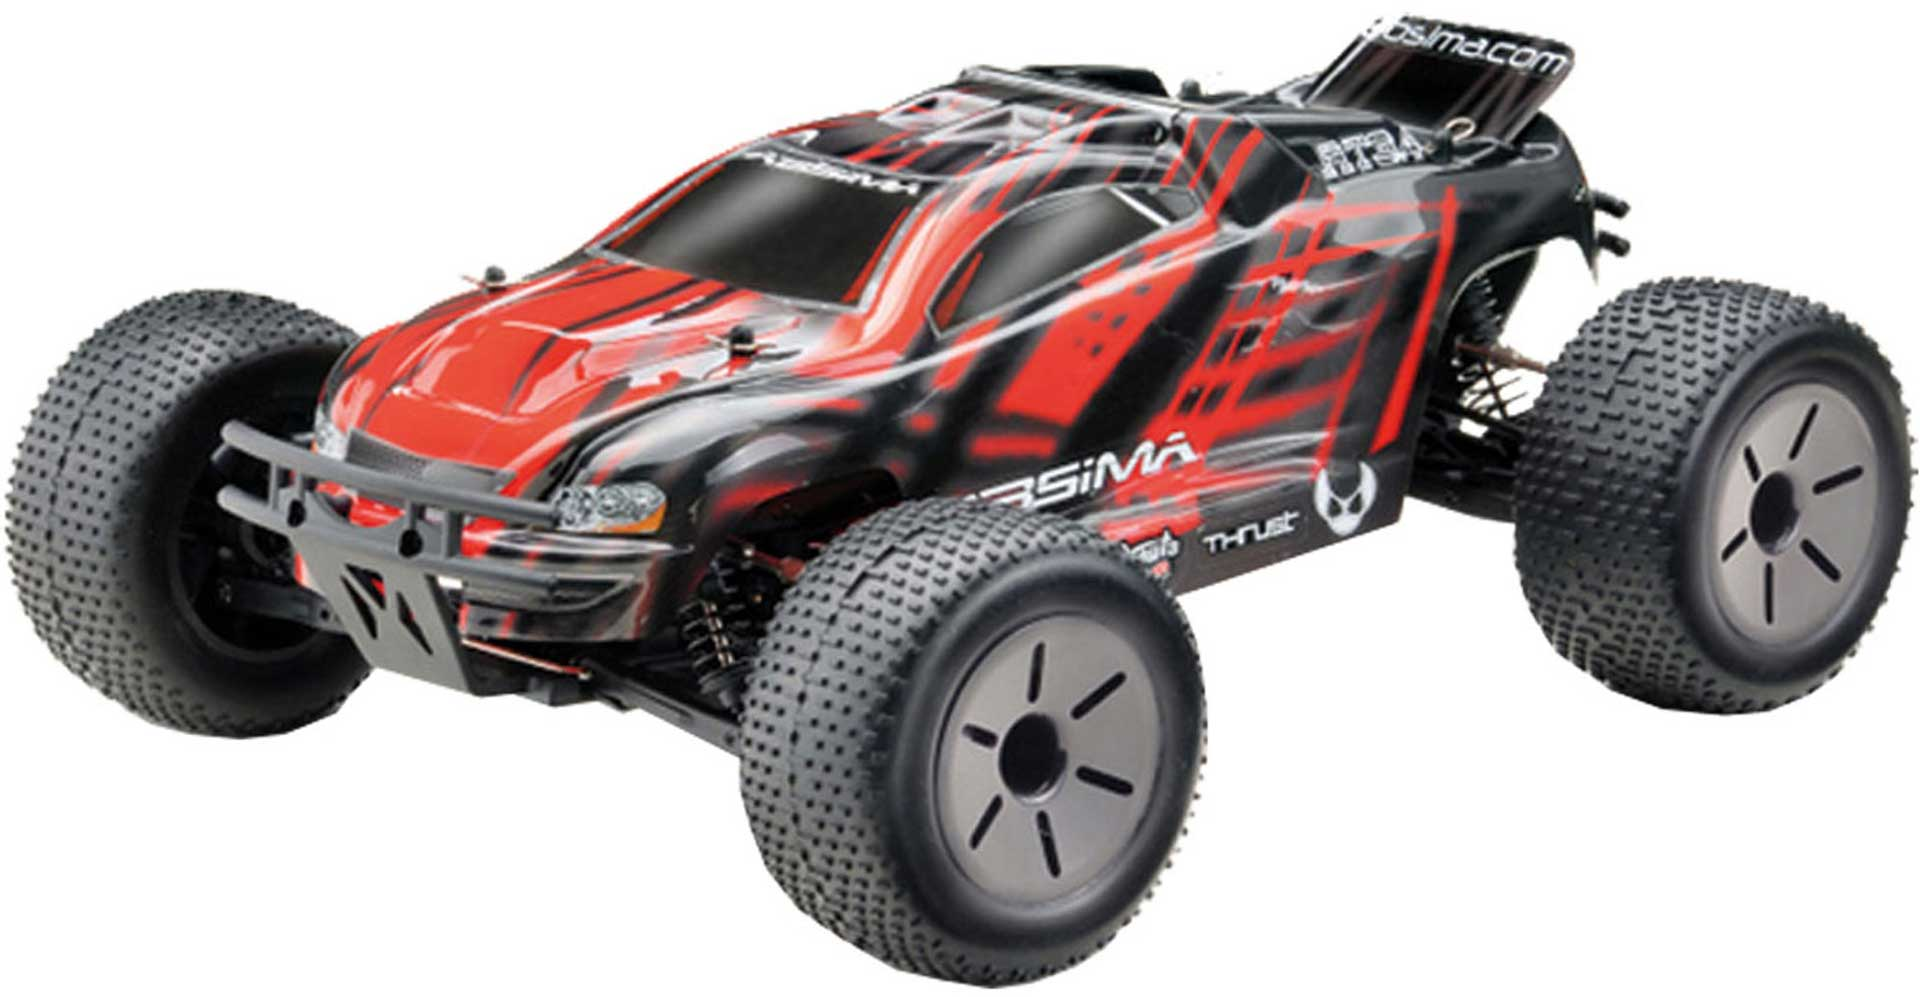 ABSIMA AT3.4 TRUGGY RTR 4WD RACE TRUCK 1/10